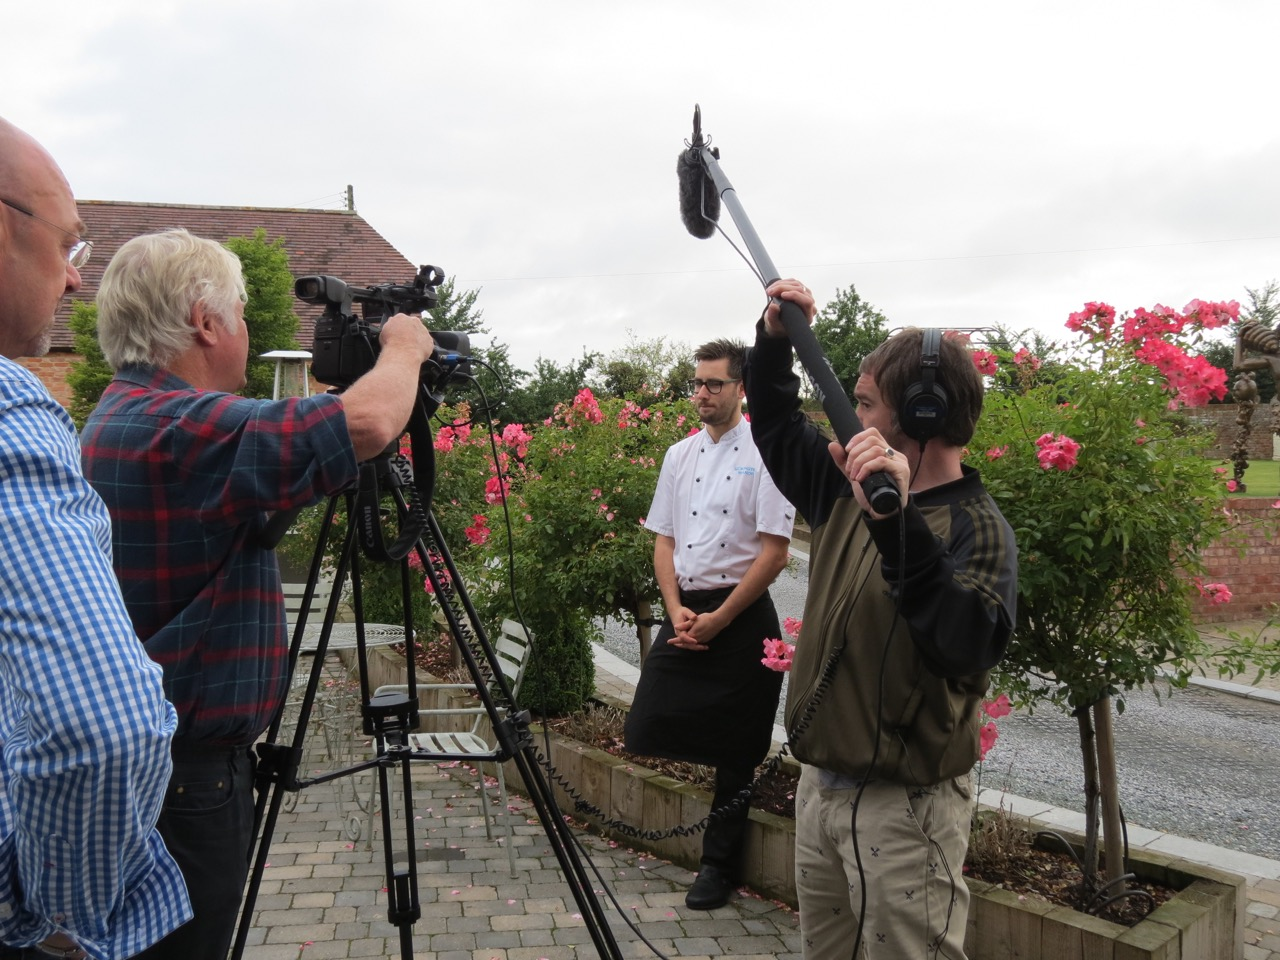 Attract attention at your next event using corporate video